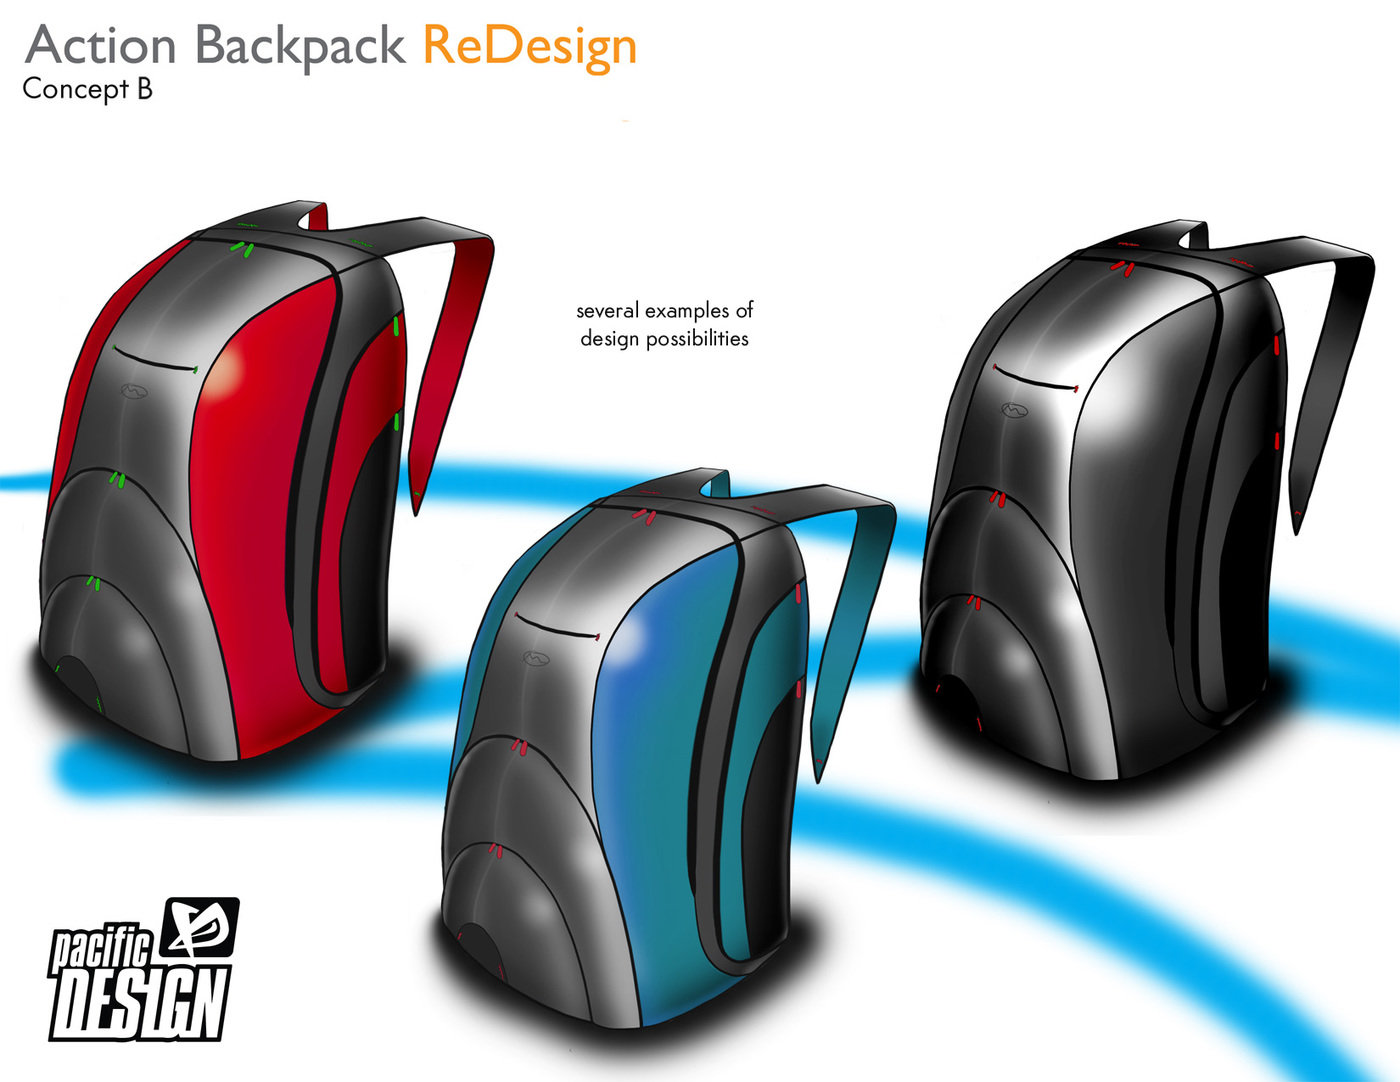 pacific design technology bags and packs by taylor welden industrial designer at. Black Bedroom Furniture Sets. Home Design Ideas